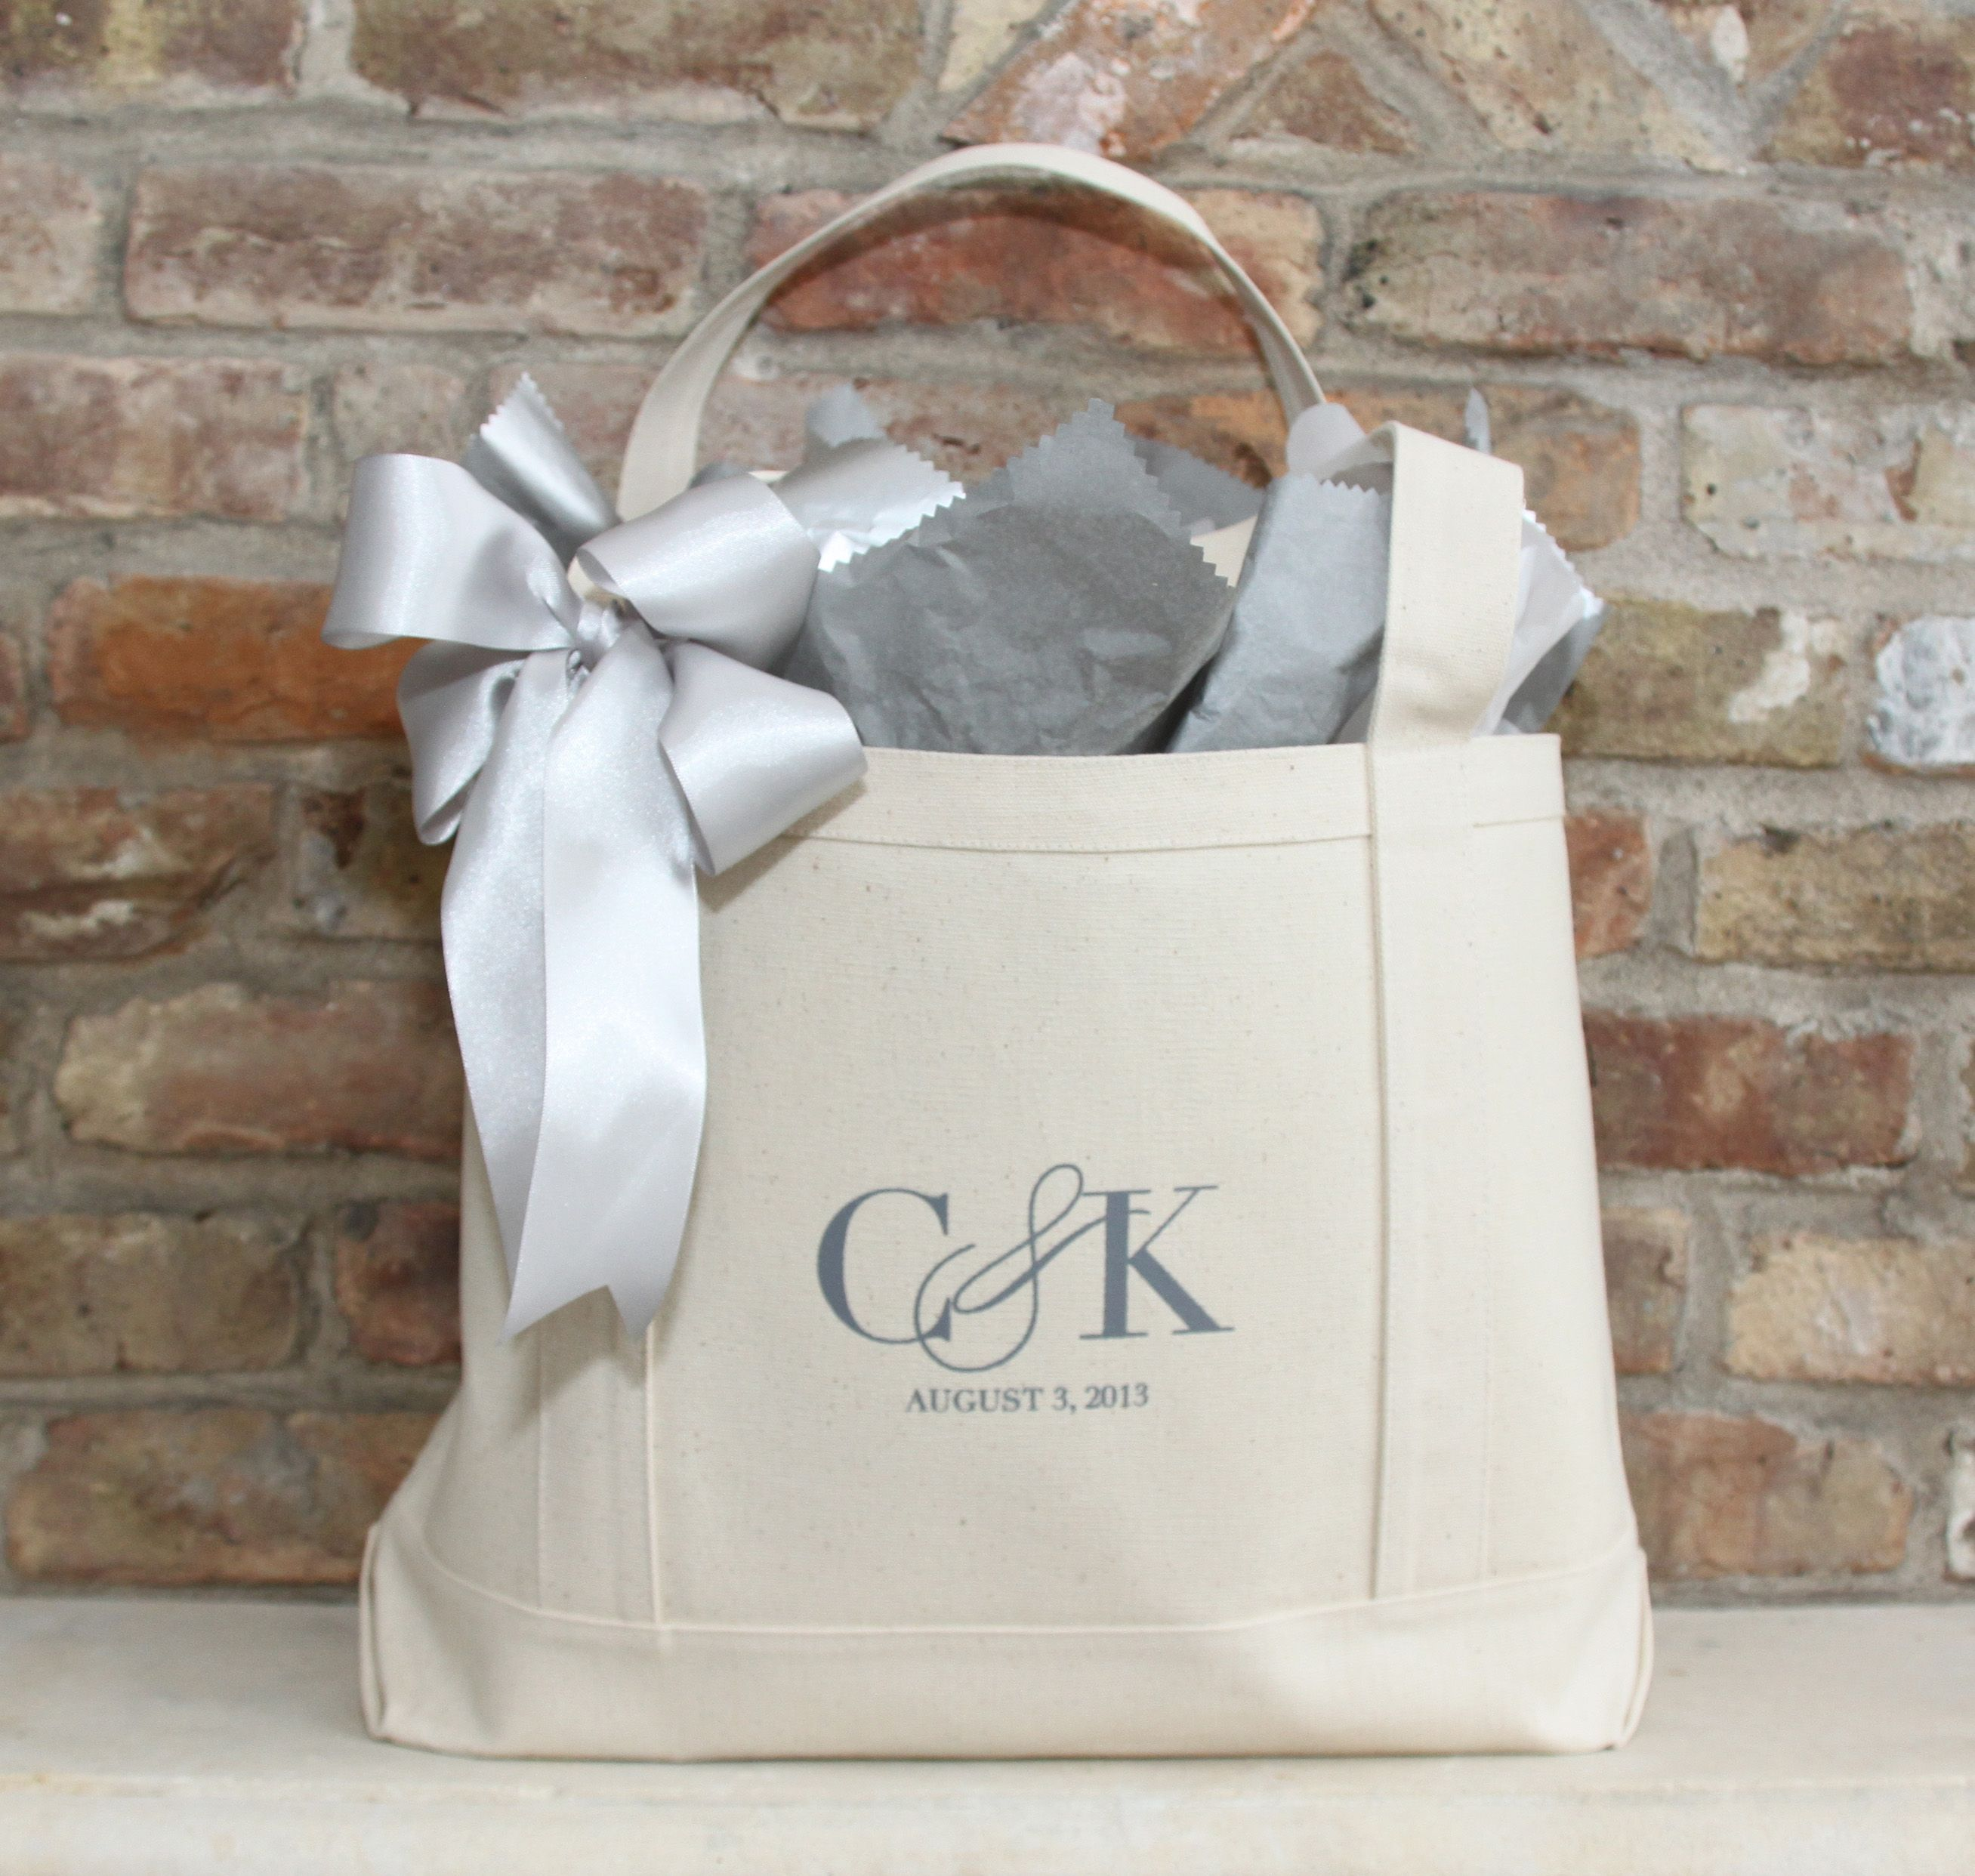 Bridal Shower Gift Idea // Custom Tote Bags | wedding | Pinterest ...